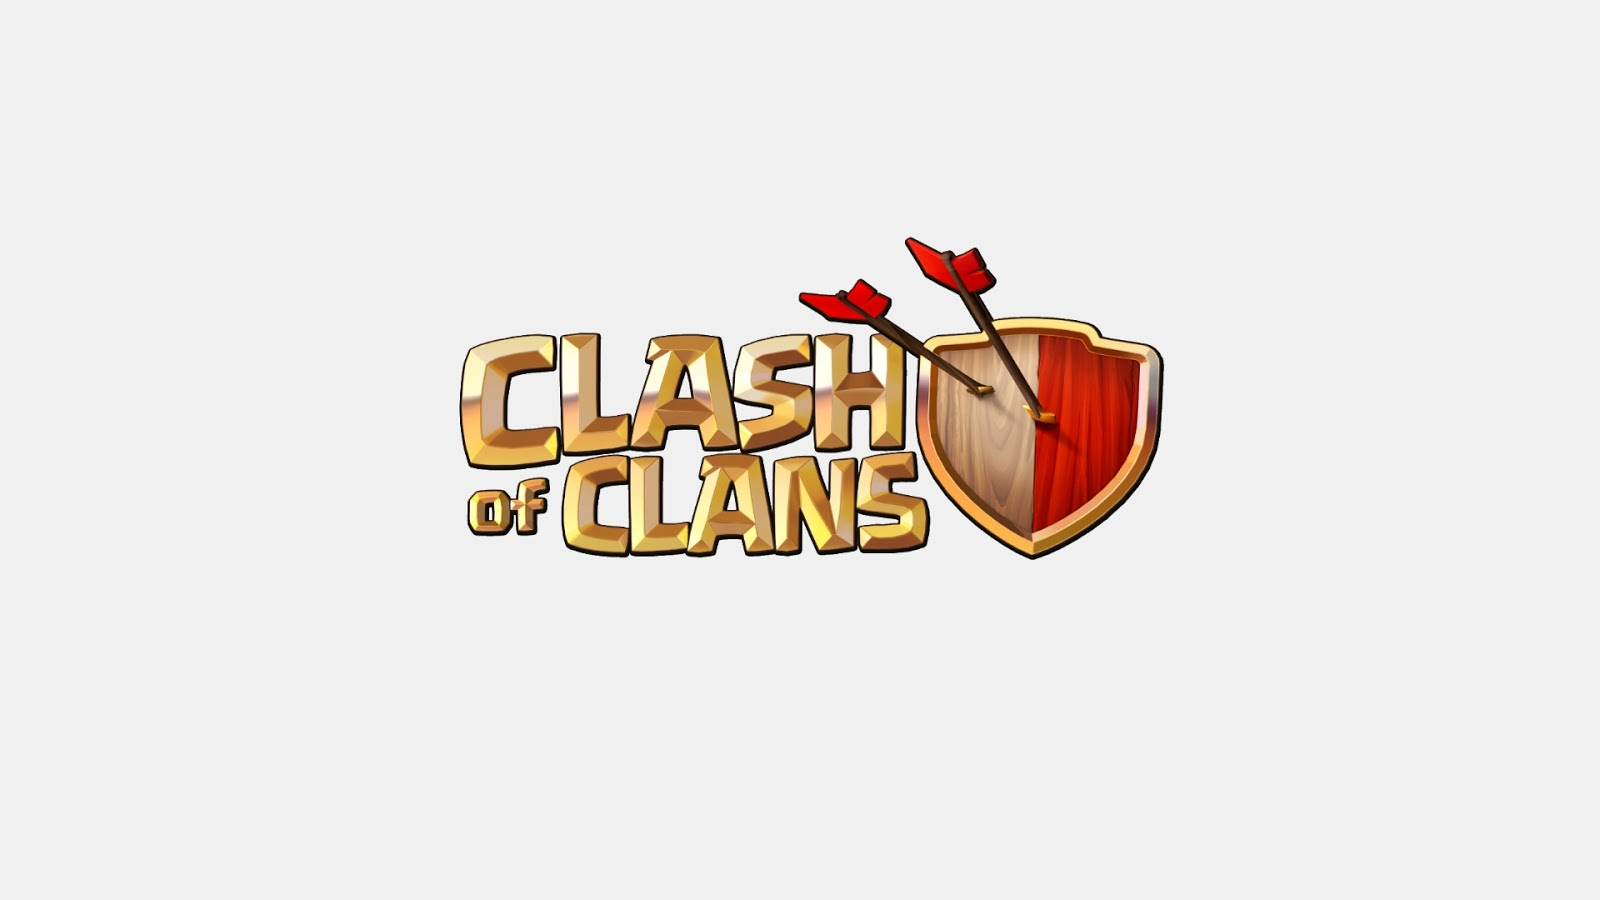 Xiaomi Wallpaper With Logo: Clash Of Clans ~ Full HD Wallpapers!